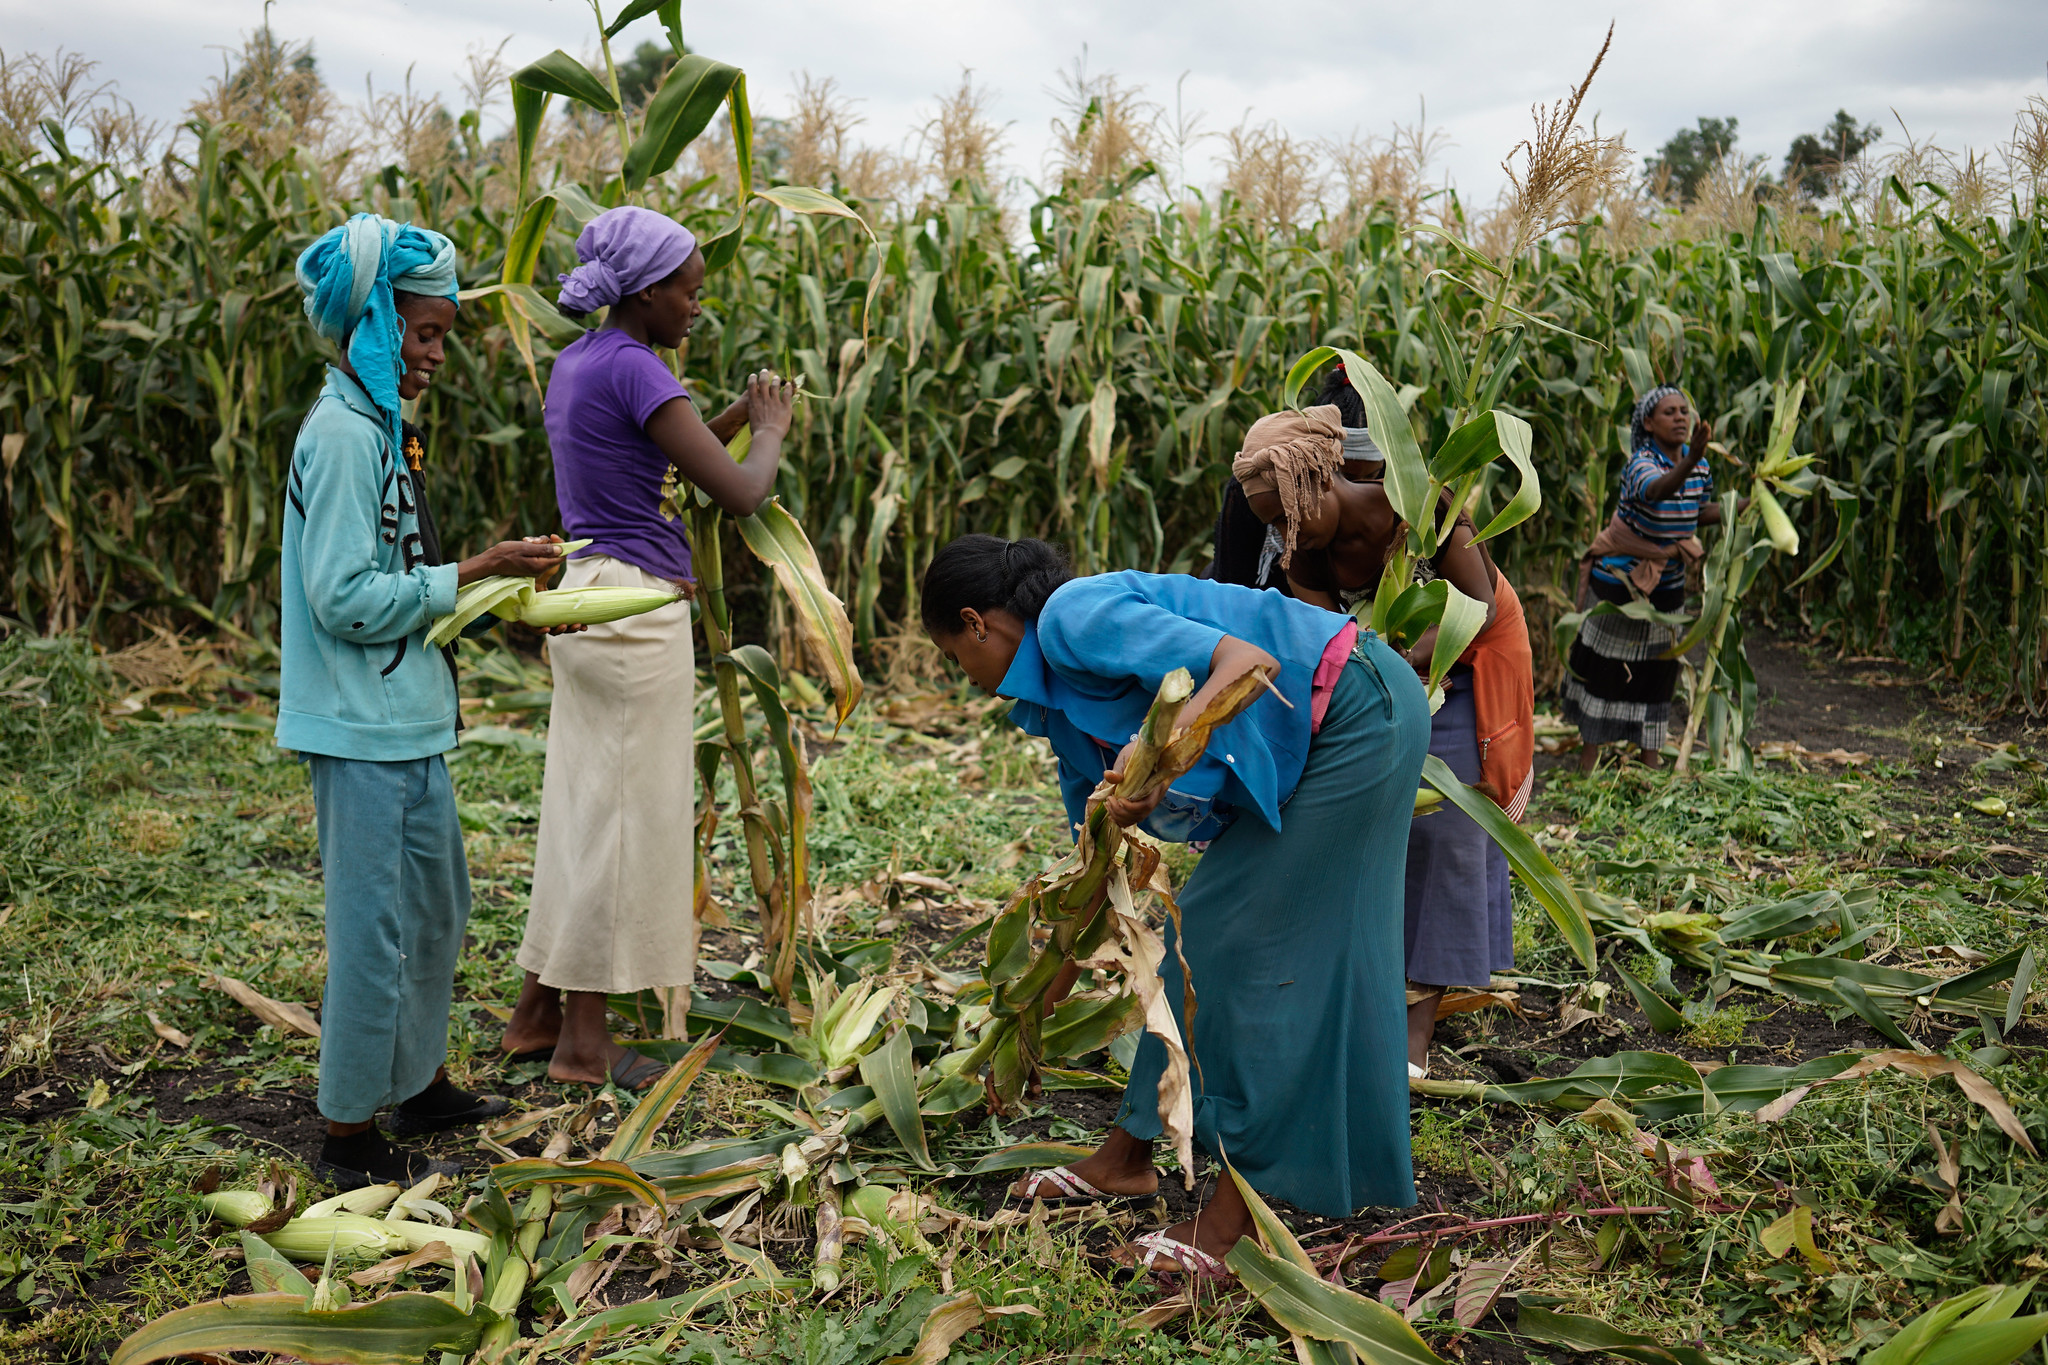 Workers harvesting green maize at Ambo Research Center, Ethiopia, 2015. (Photo: CIMMYT/ Peter Lowe)